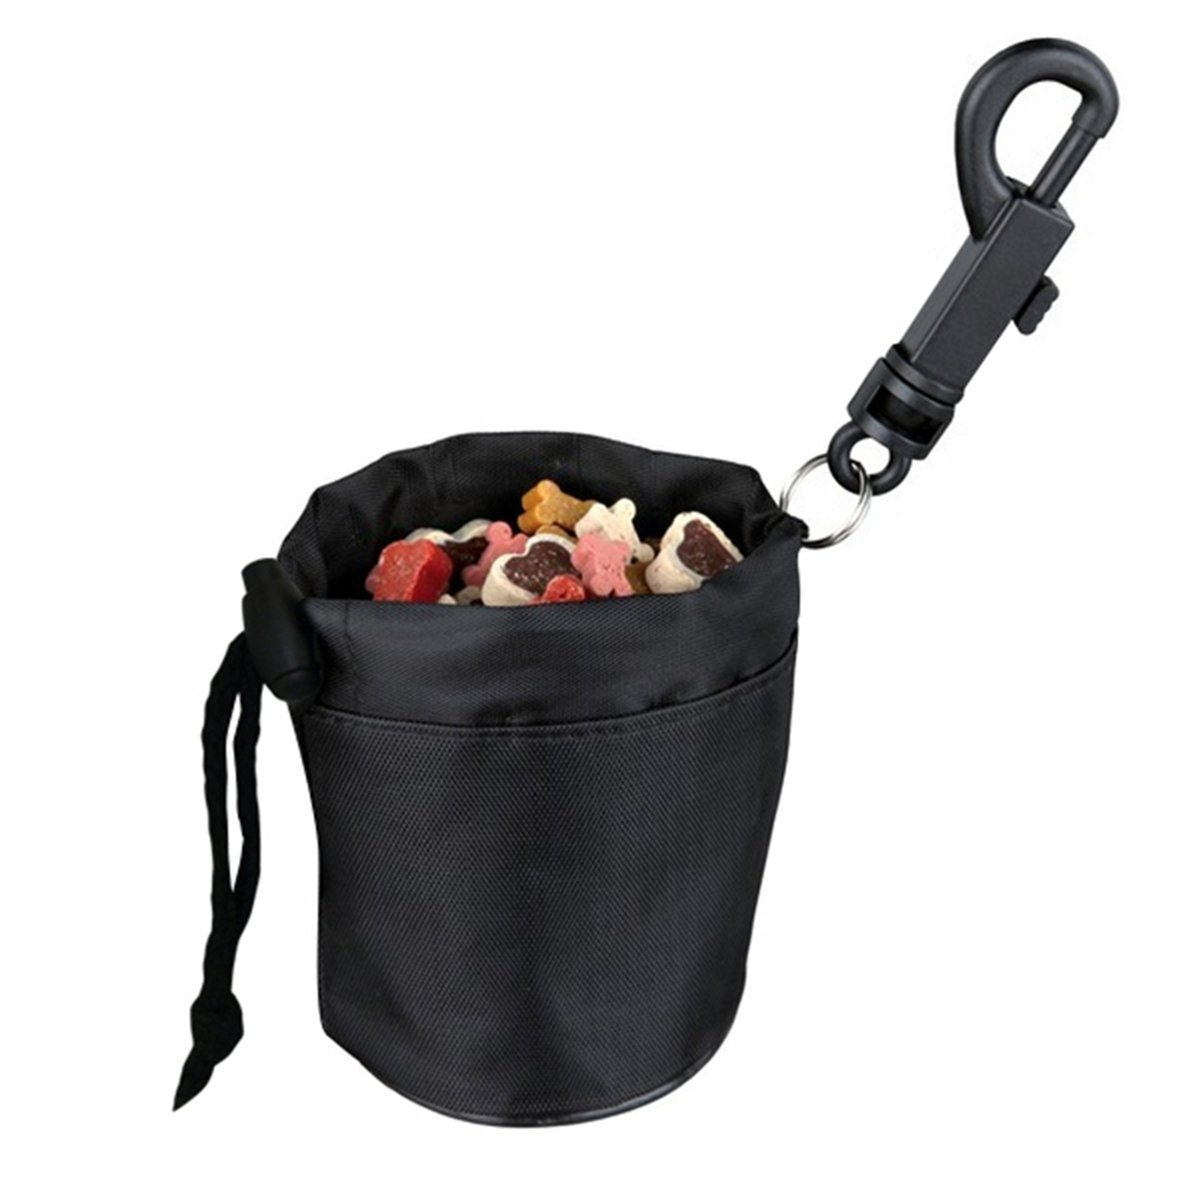 H88-Mini Snack Bag Food Treat Storage Holder Training Pet Dog Cat Bird Puppy   6500350 by H88